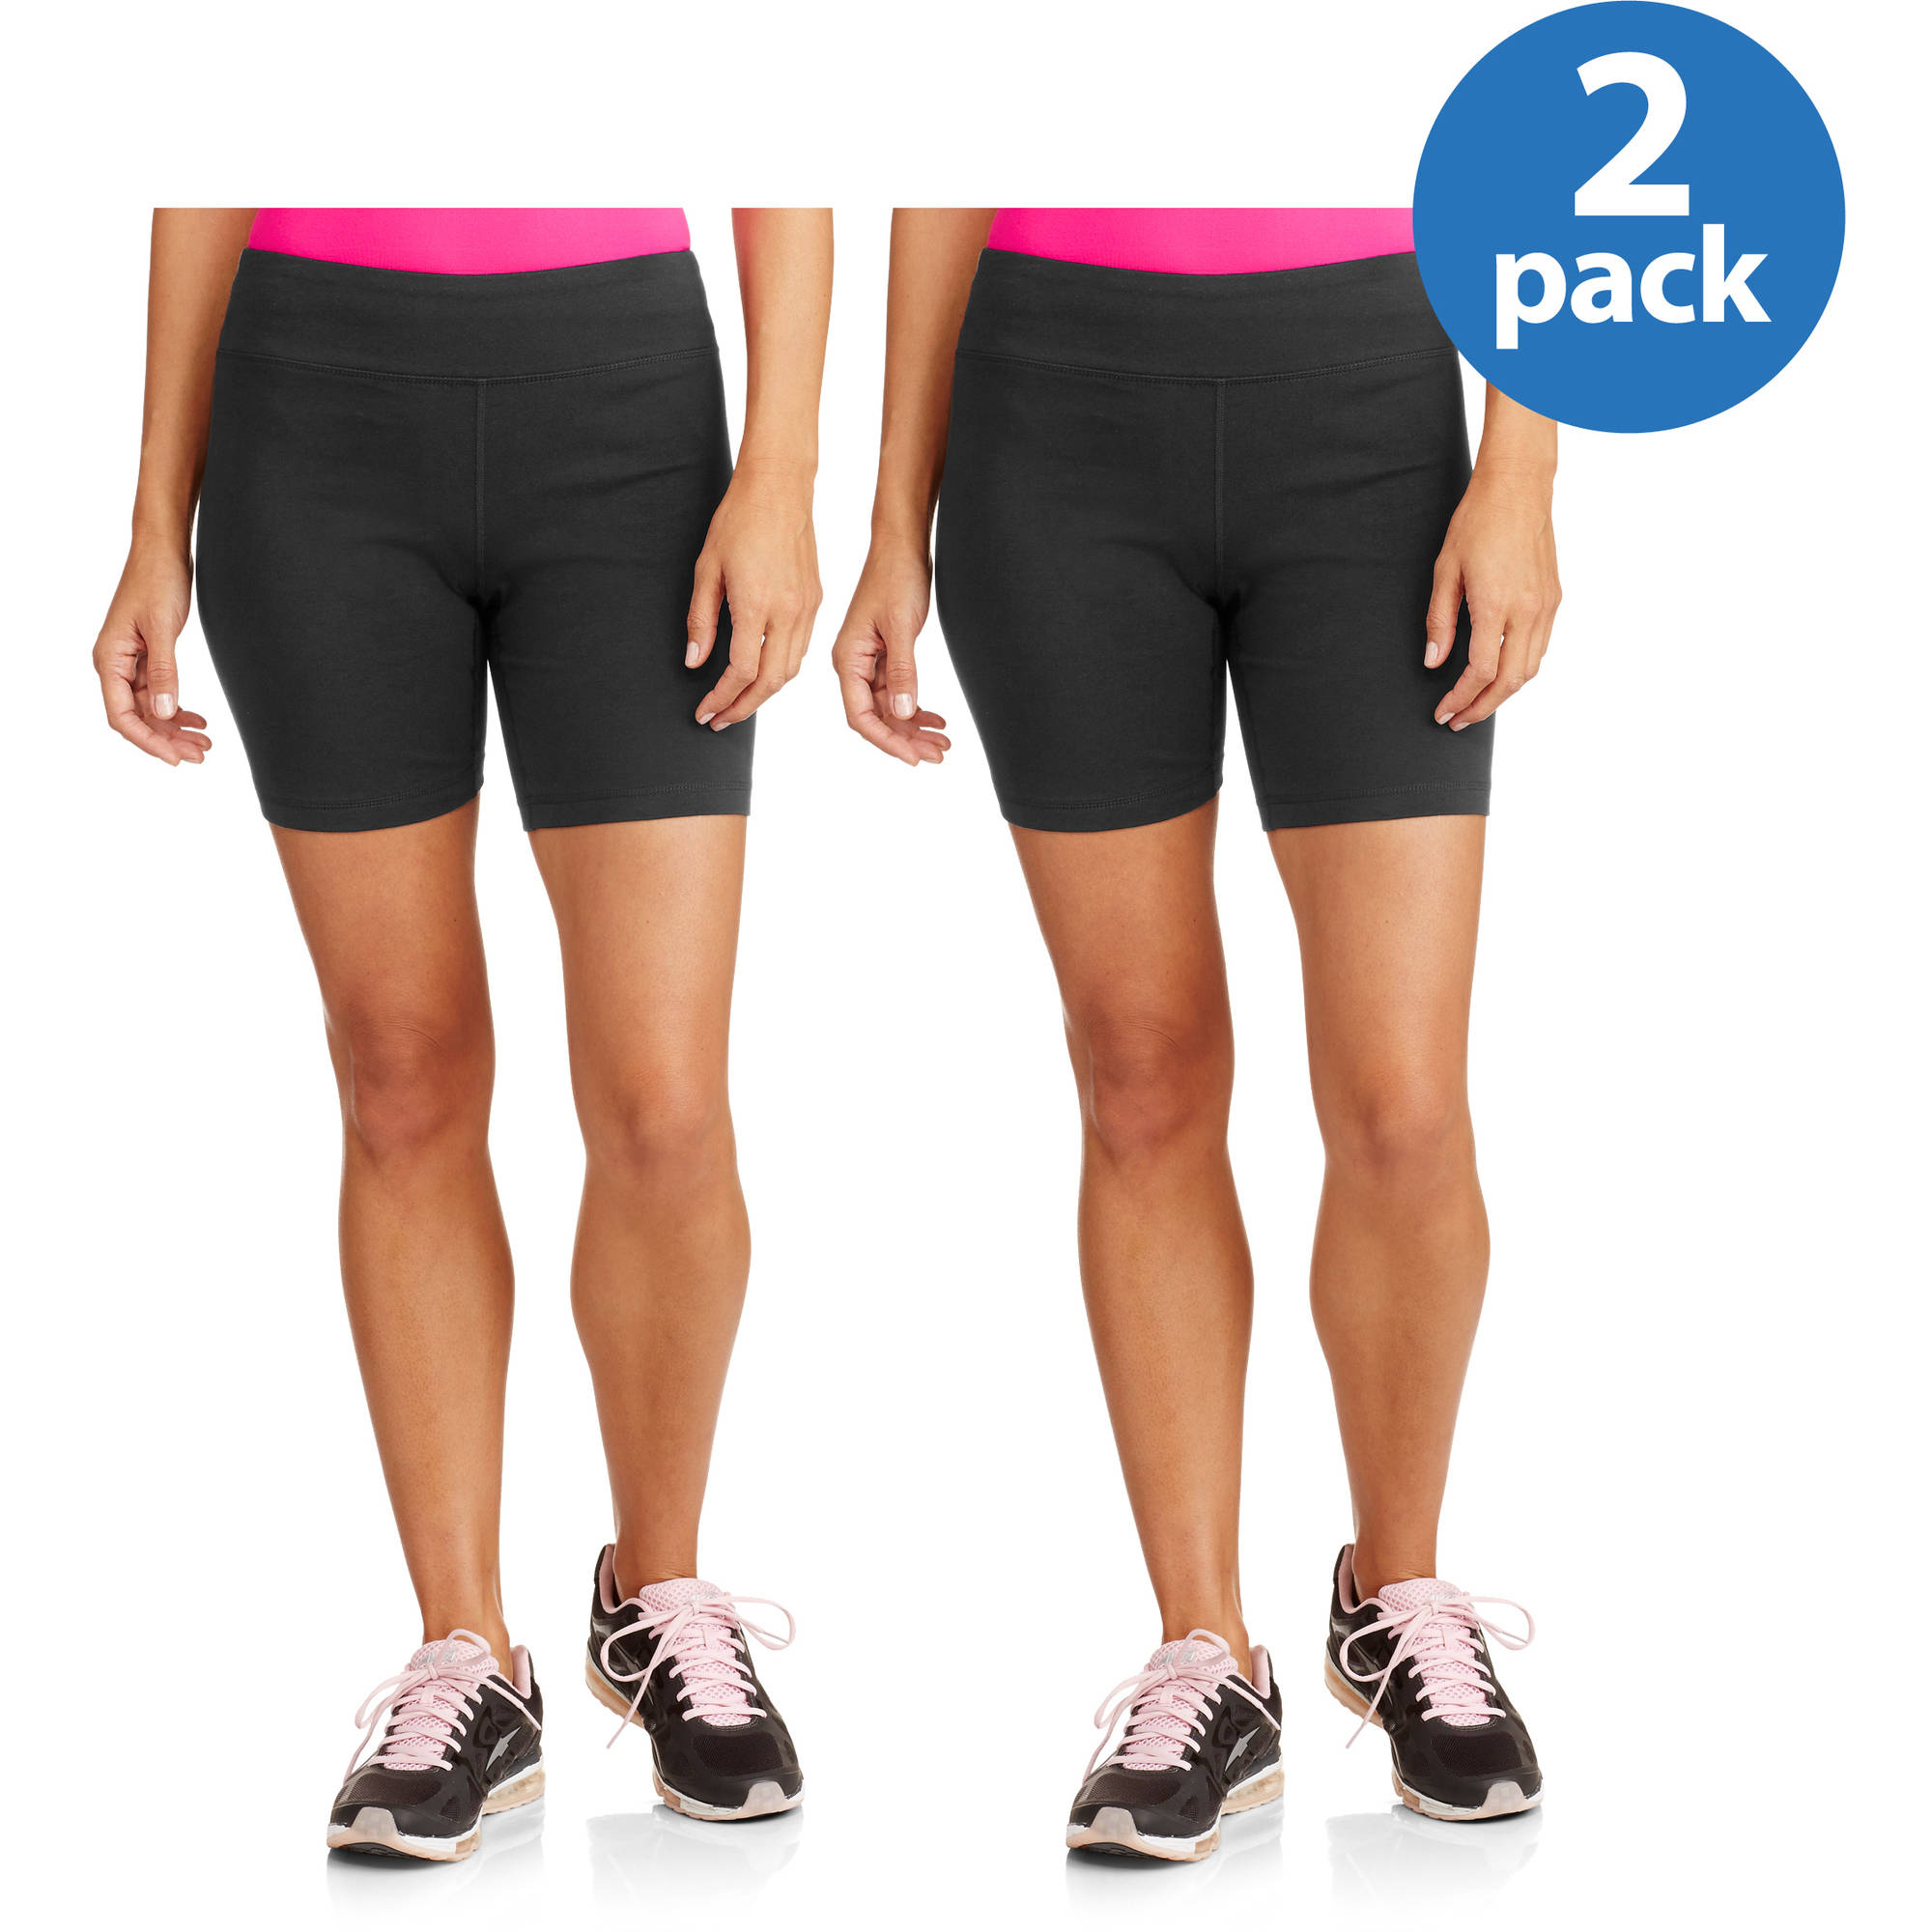 danskin now womenu0027s dri-more core bike shorts, 2-pack - walmart.com WDLSWYY